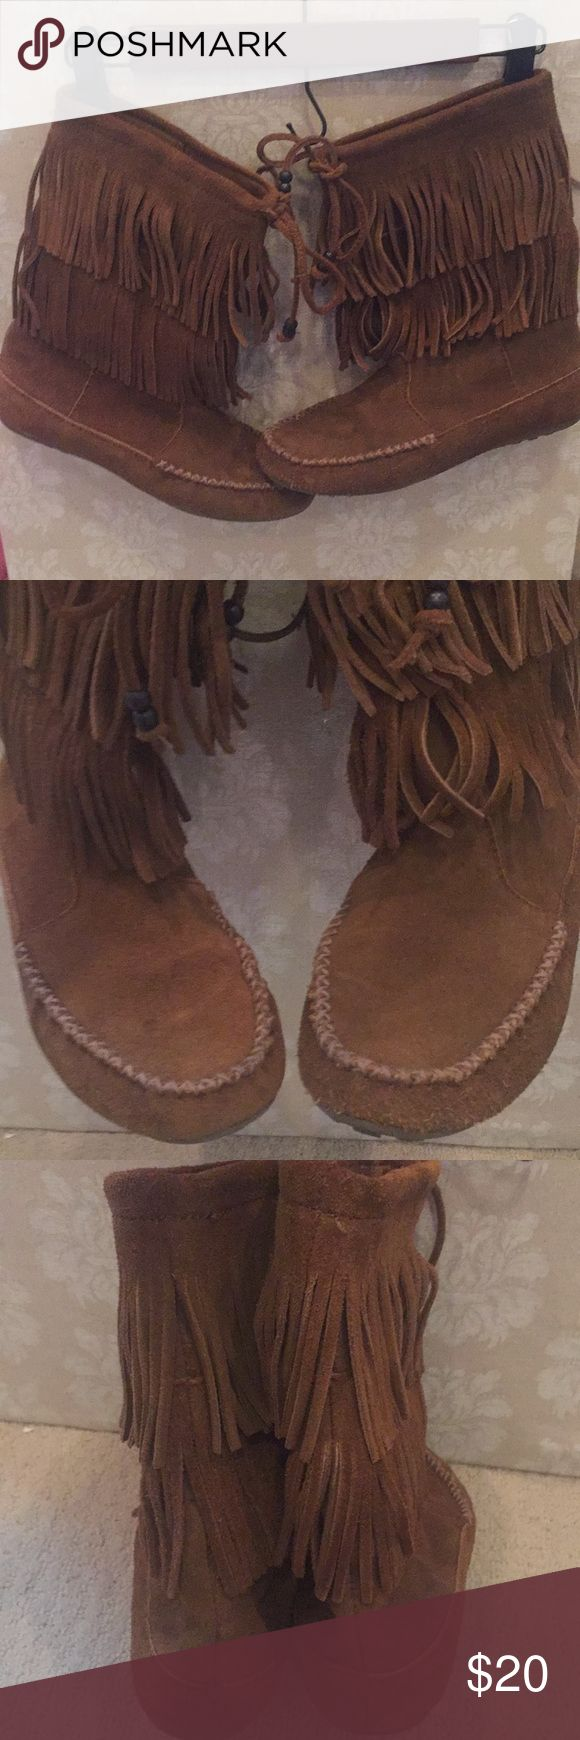 Minnetonka Suede Fringe Booties Genuine leather, super comfortable Booties look great with leggings or skinny jeans!   There's one small, faint spot on the top of the left boot (see last pic), but these are in otherwise awesome condition!  Smoke-free, pet friendly home. All items are in a condition I, myself, would be willing to buy. I try to note all flaws, but please review photos carefully for the most accurate description! Minnetonka Shoes Ankle Boots & Booties